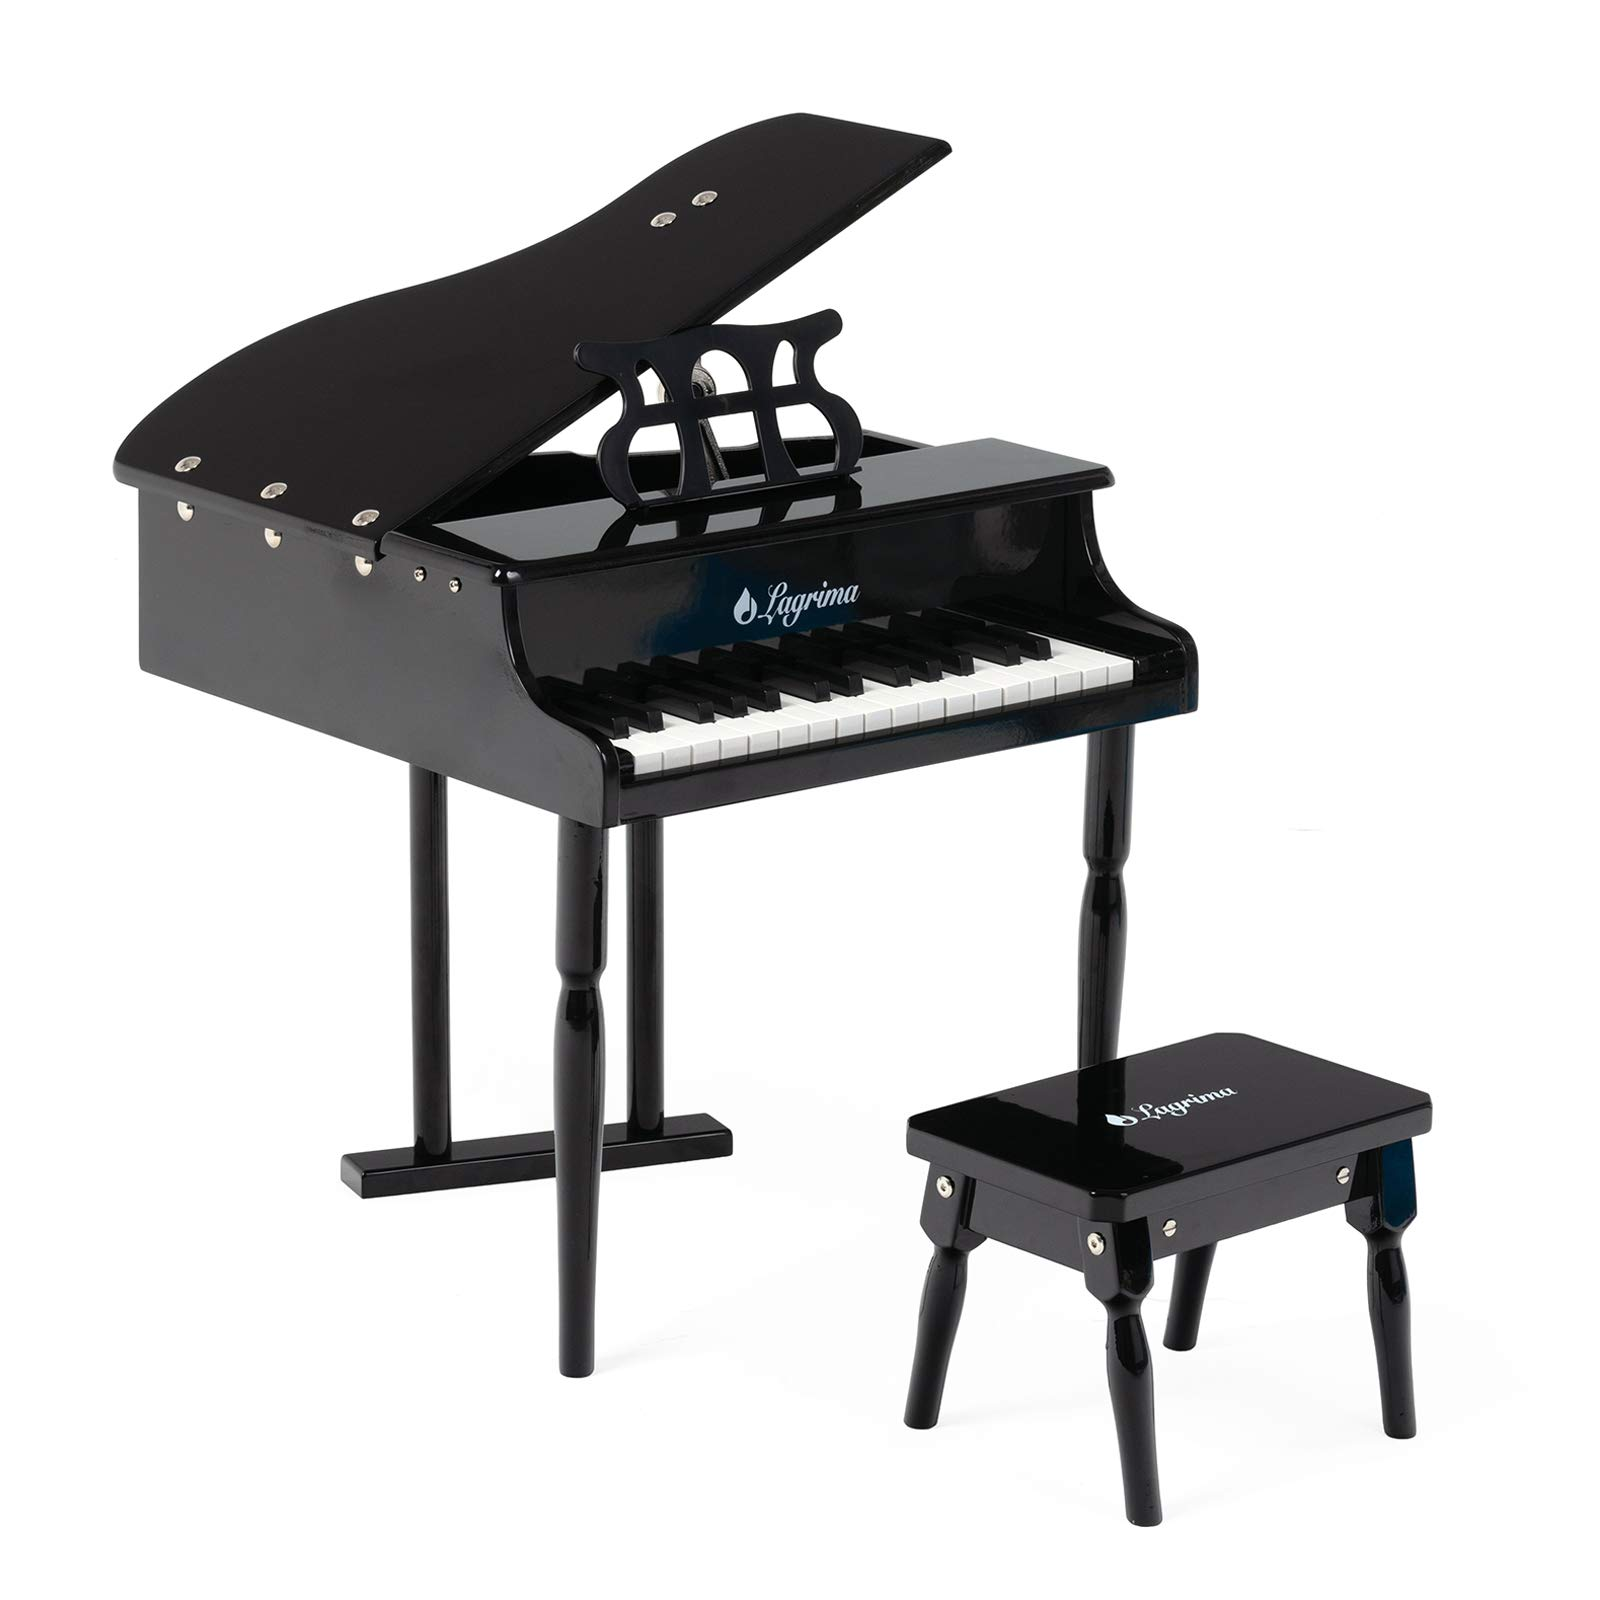 LAGRIMA Classical Kids Piano, 30 Keys Wood Mini Baby Grand Piano w/ Bench, Mini Musical Toy for Child (Black) by LAGRIMA